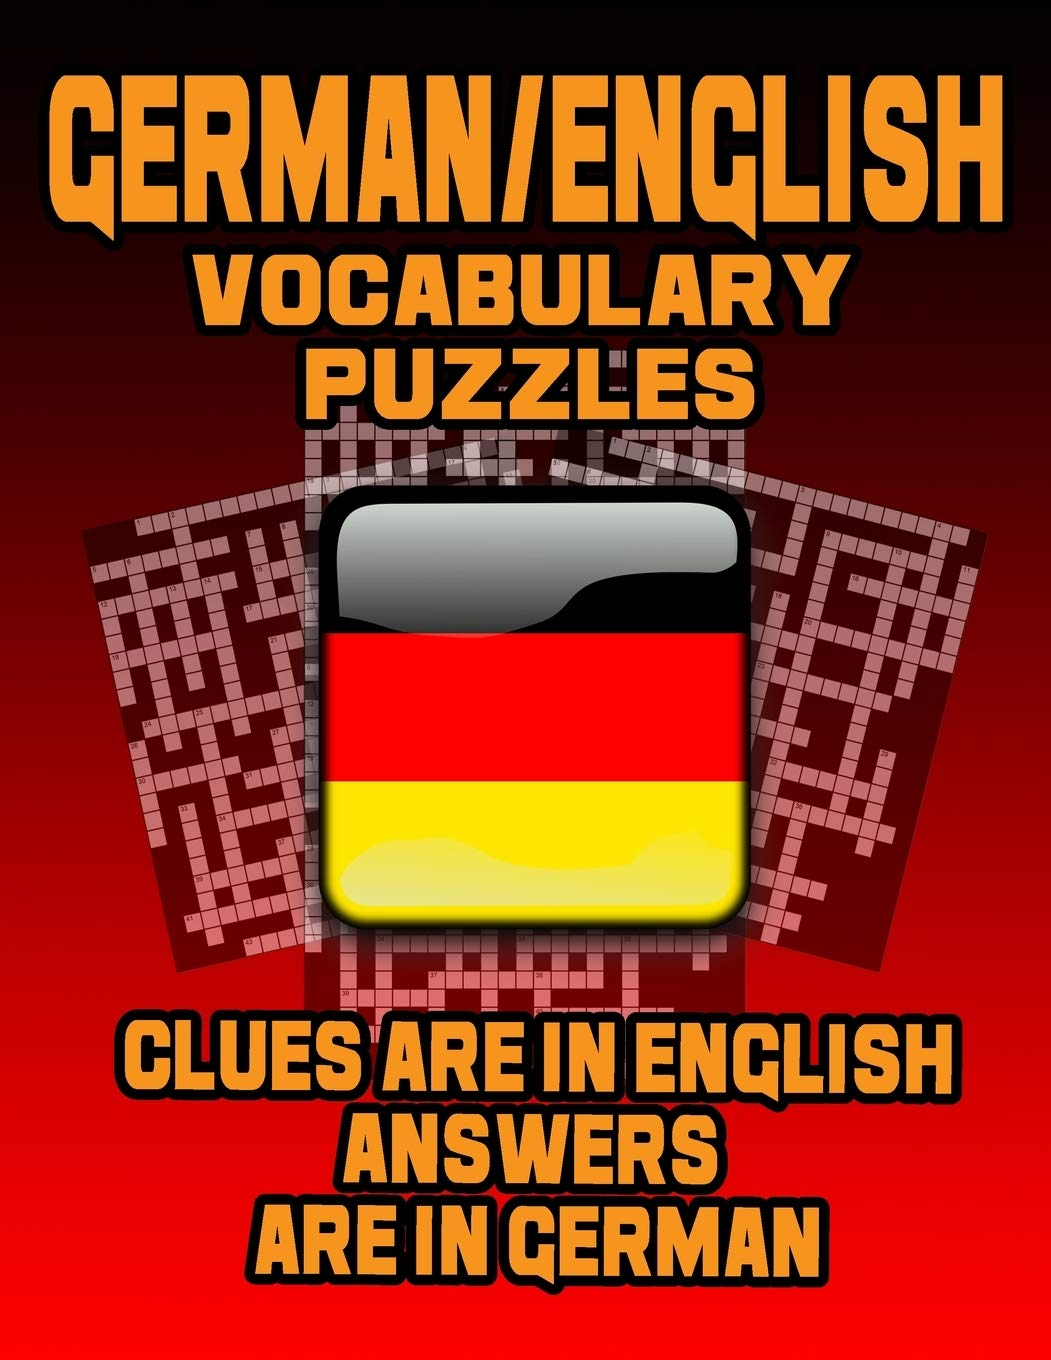 German English Vocabulary Puzzles Learn German By Doing Fun Puzzles Large Print 20 Crosswords With Clues In English Answers In German And 60 Word Match German English Puzzles On Target Puzzles Puzzles On Target